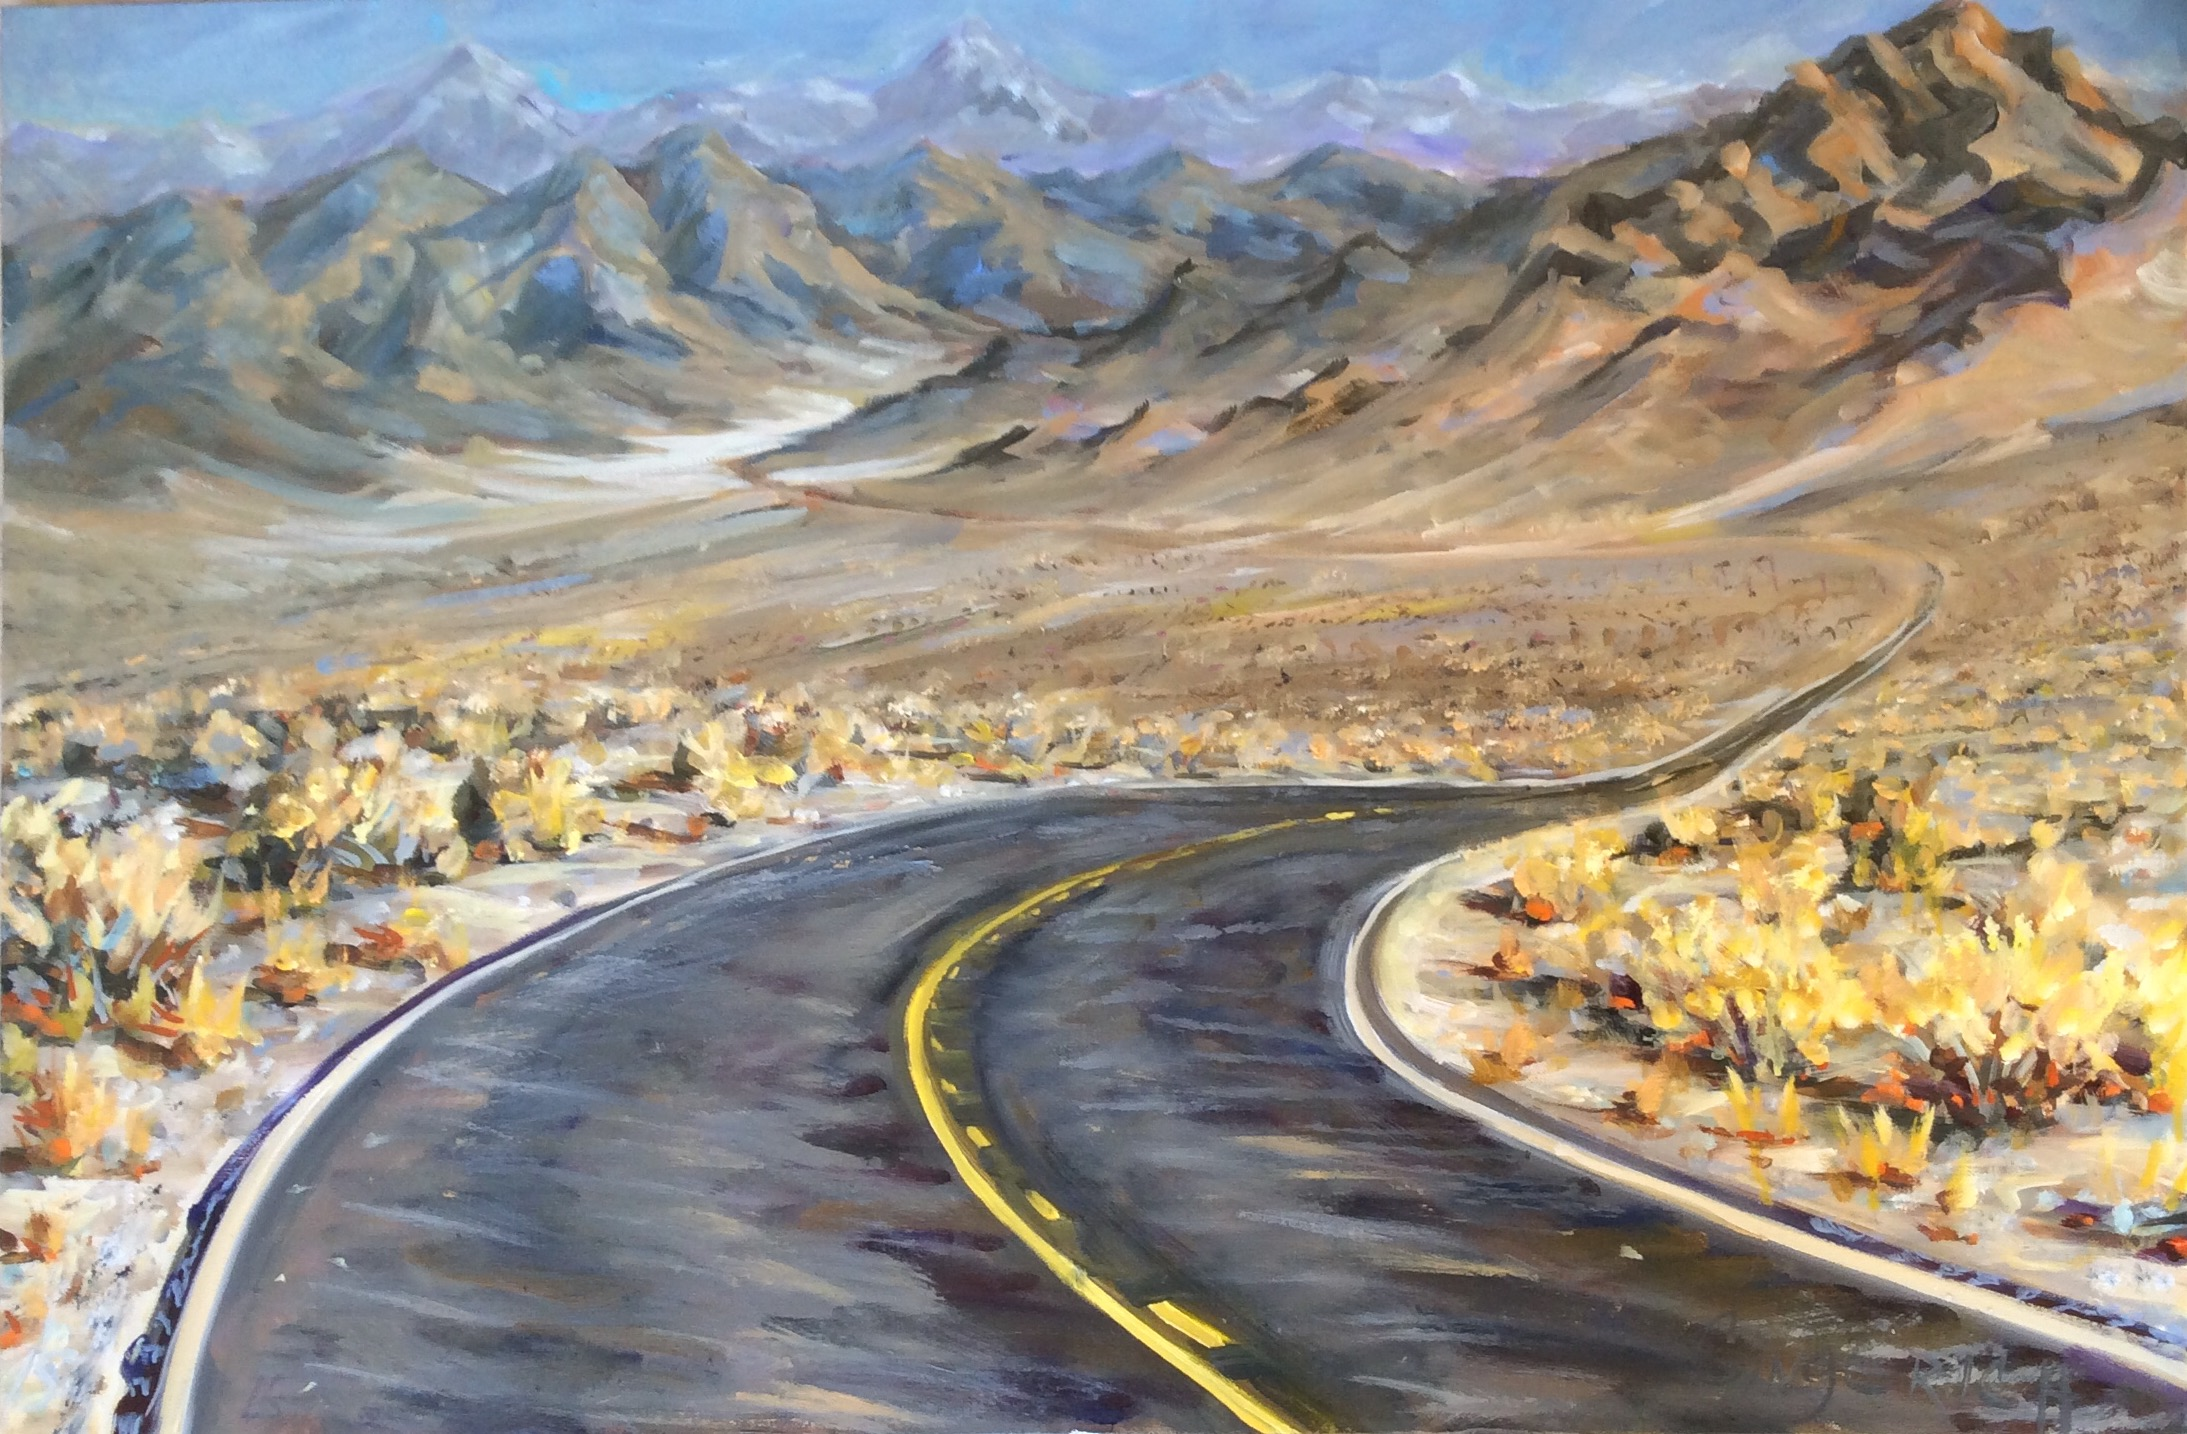 Sierra Bound  30 x 40 inches, oil on canvas